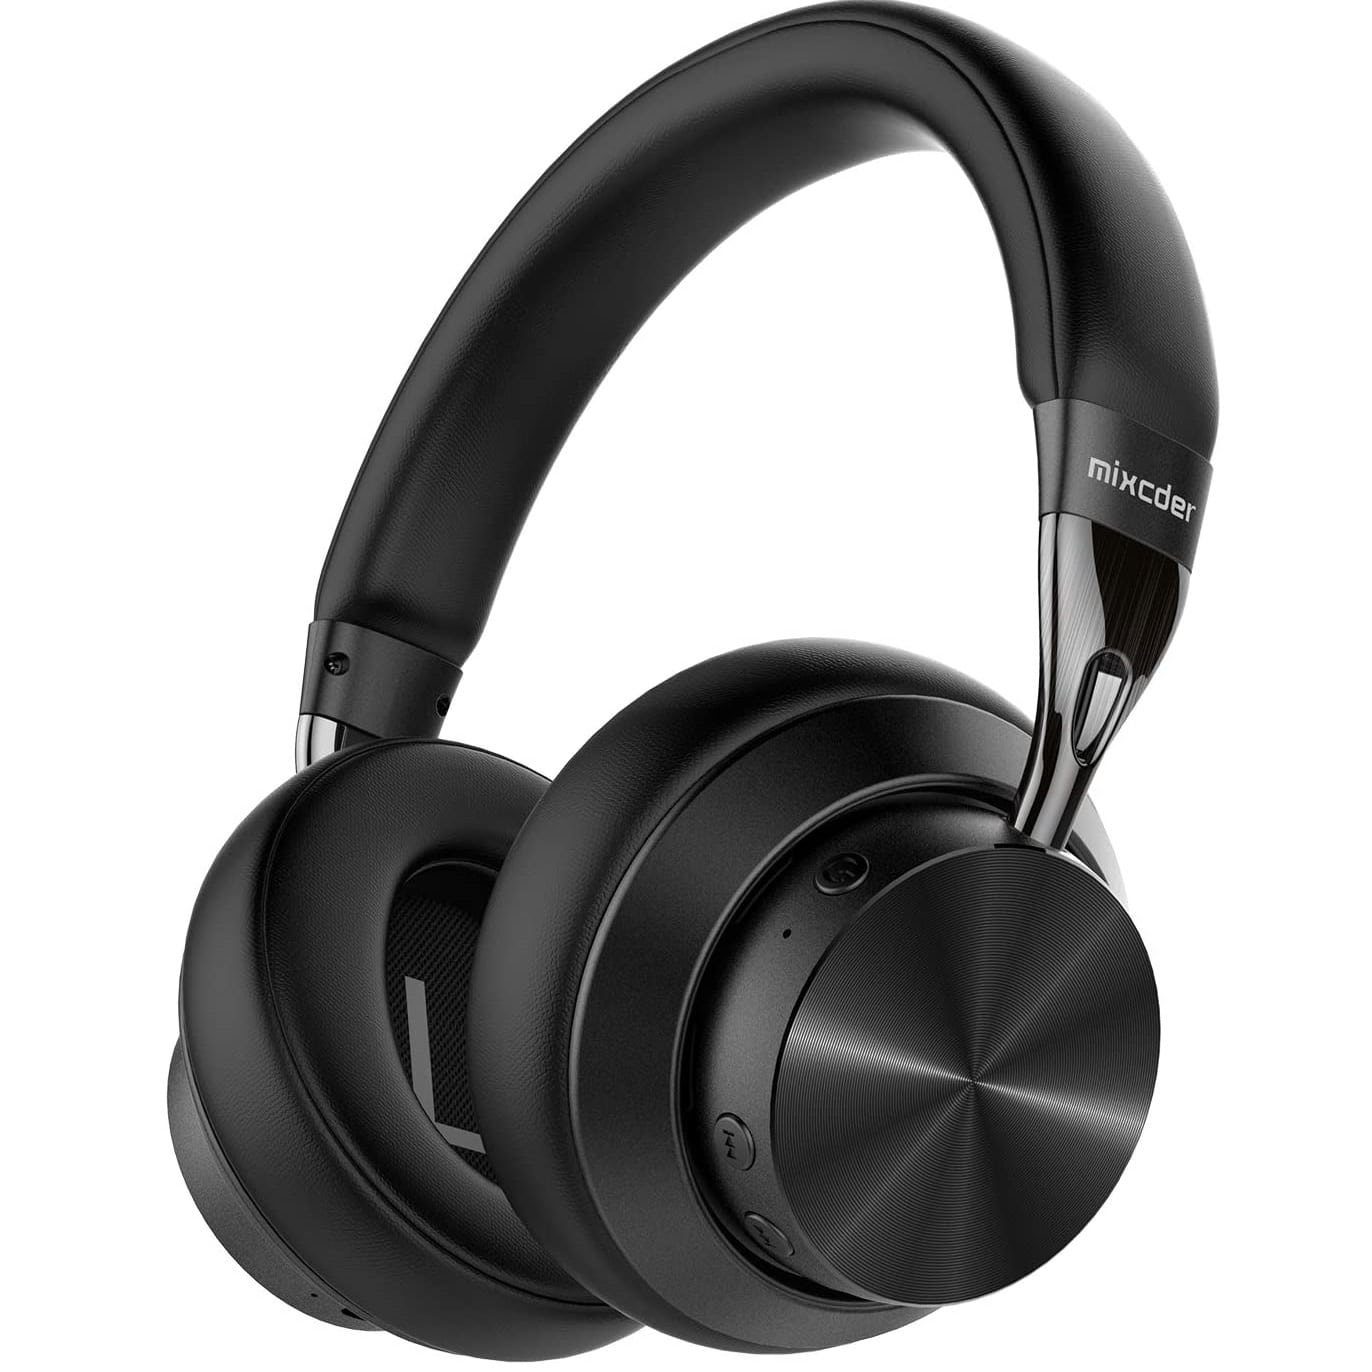 Mixcder E10 Wireless Headphones: A Complete Review